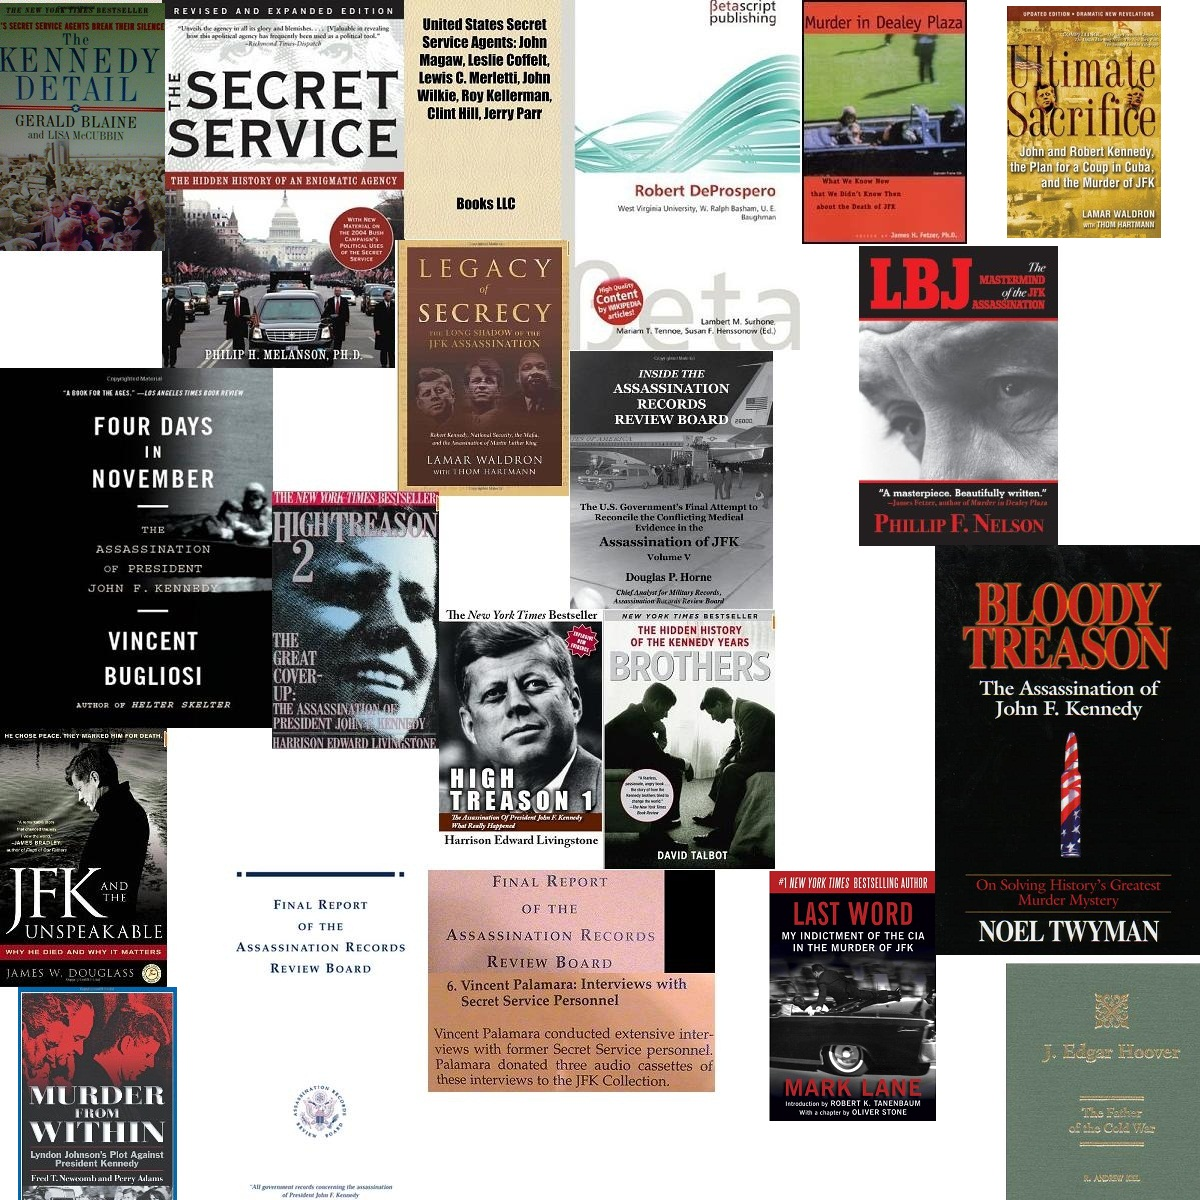 VINCE PALAMARA- JUST SOME OF THE MANY BOOKS I AM IN